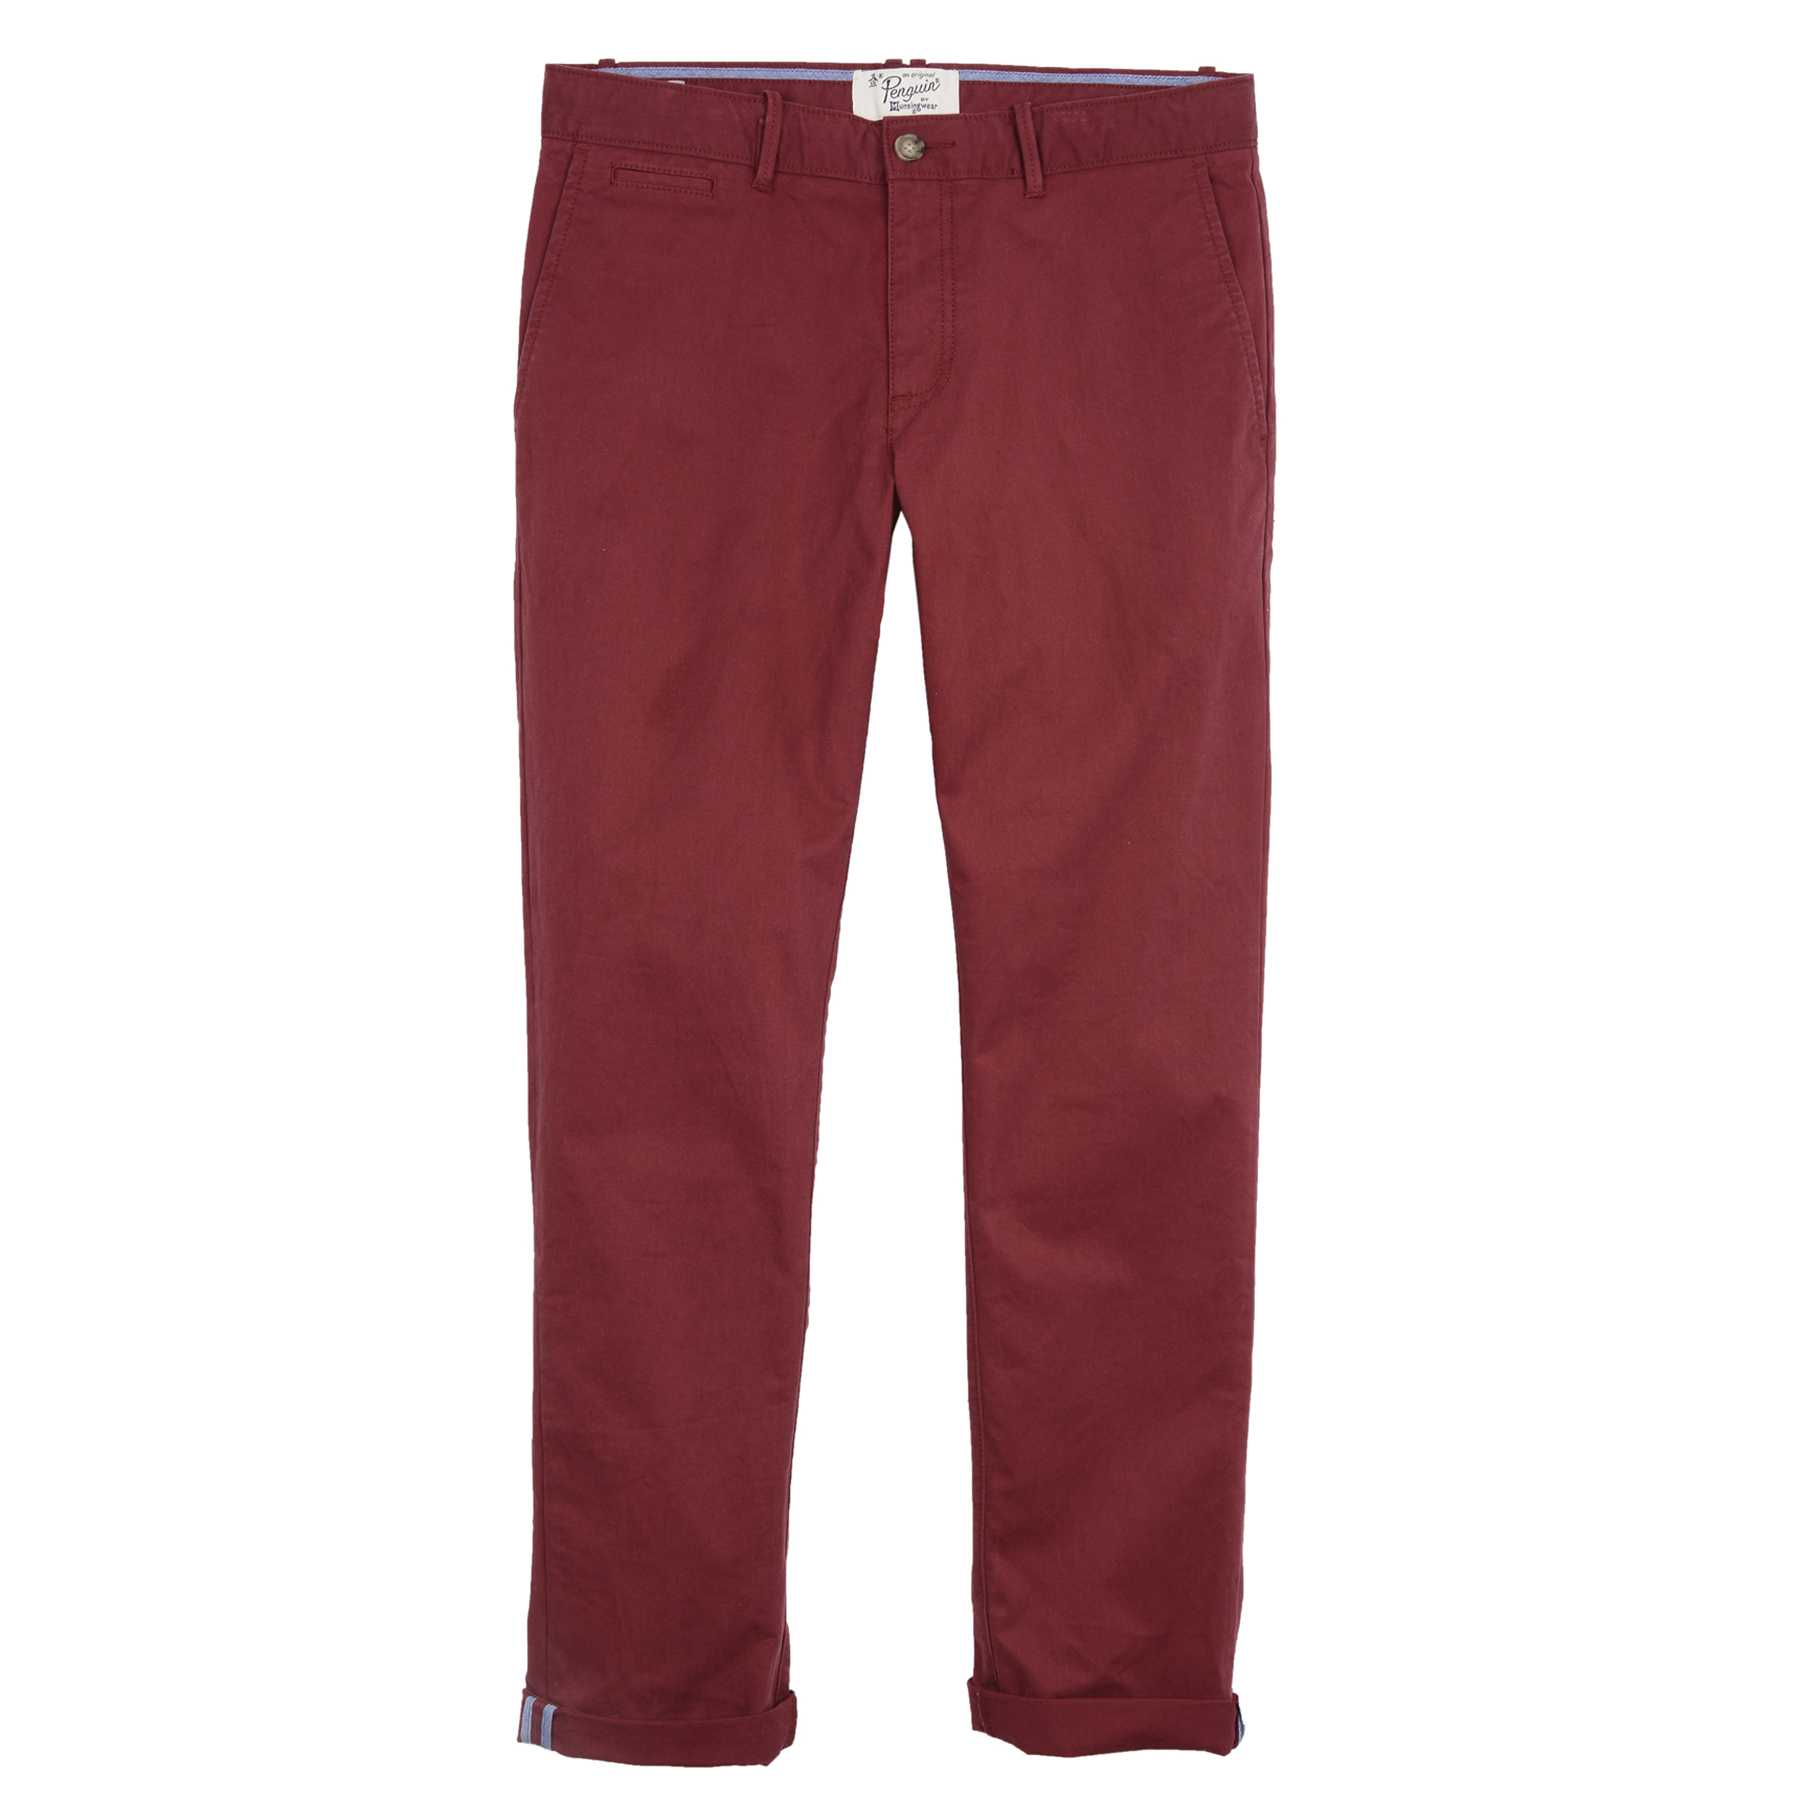 Original Penguin P 55 SLIM STRETCH CHINO